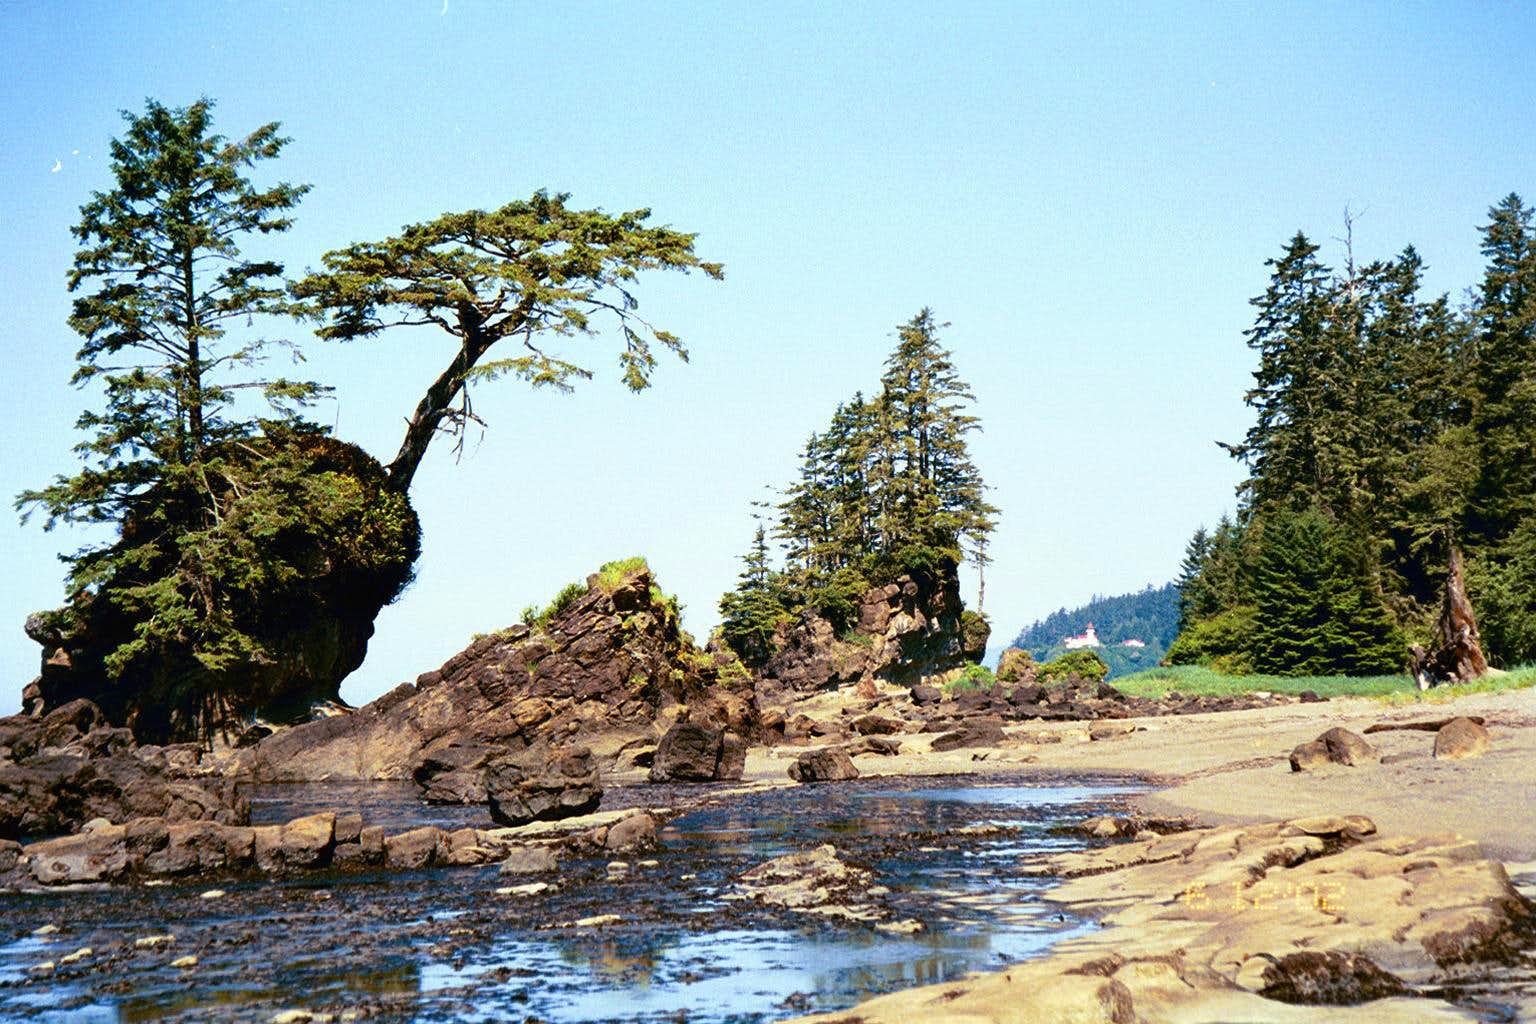 West Coast Trail, Pacific Rim National Park, B.C.